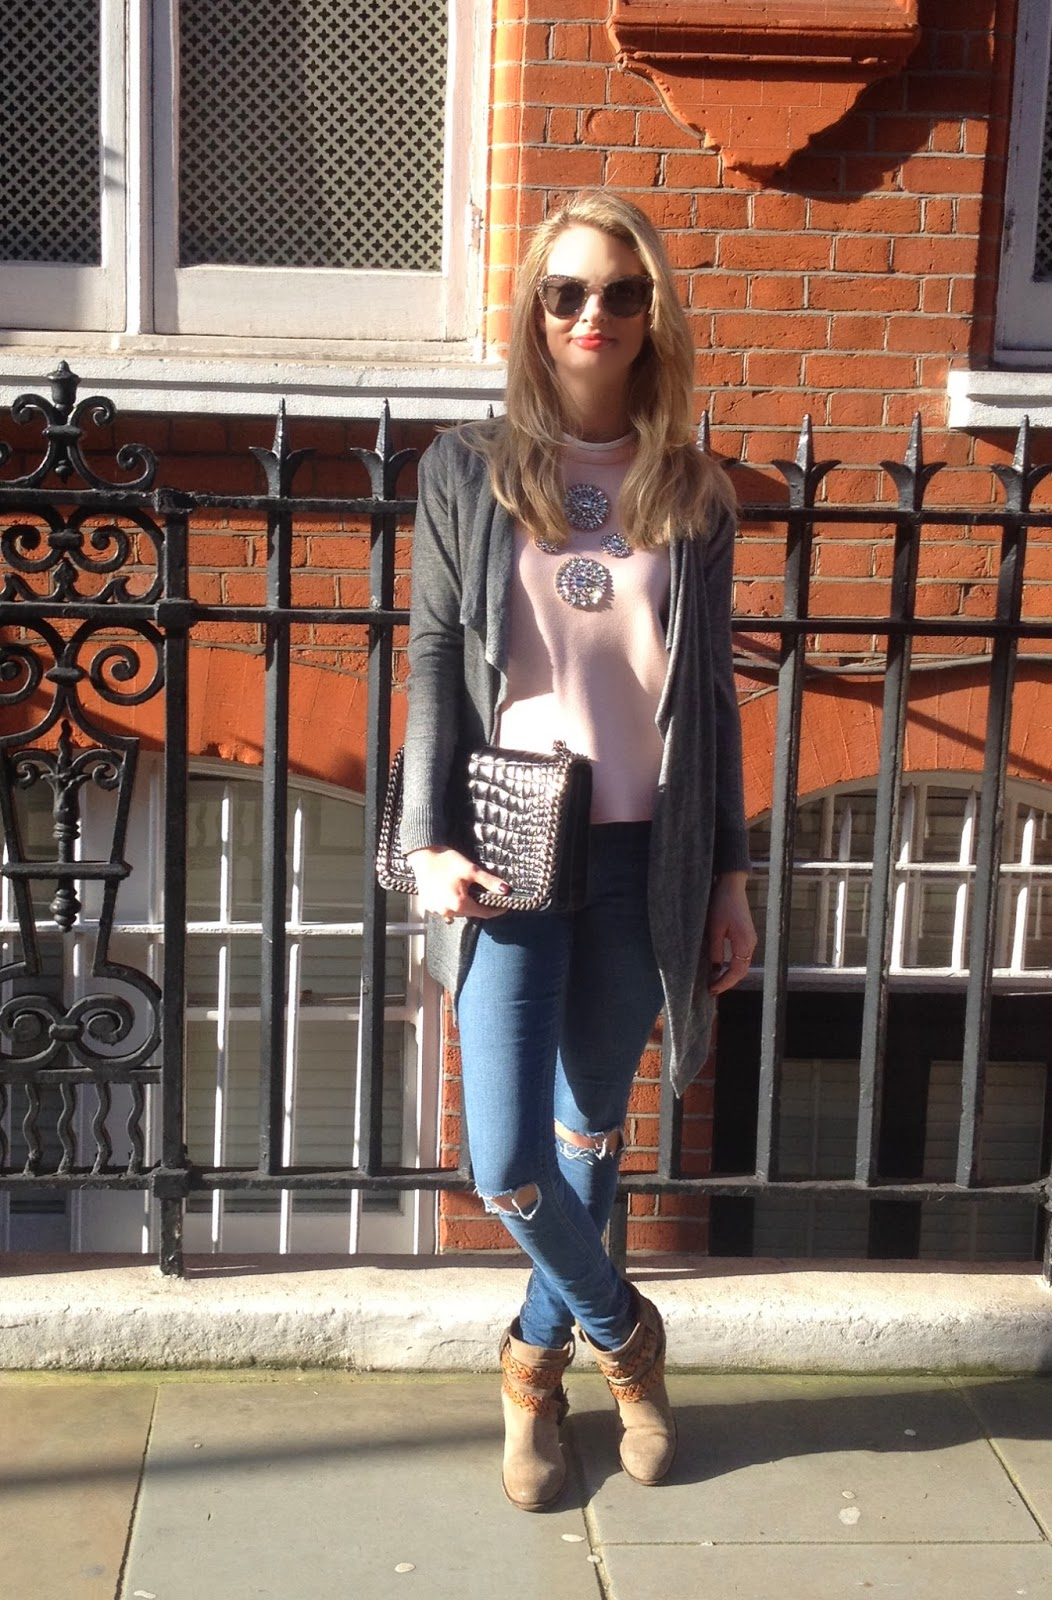 glitter top, top with stones, zara top, pink zara top, zara bag, zara chain bag, fashion blogger, london fashion blogger, skinny jeans, ripped skinny jeans, sunglasses, miu miu sunglasses